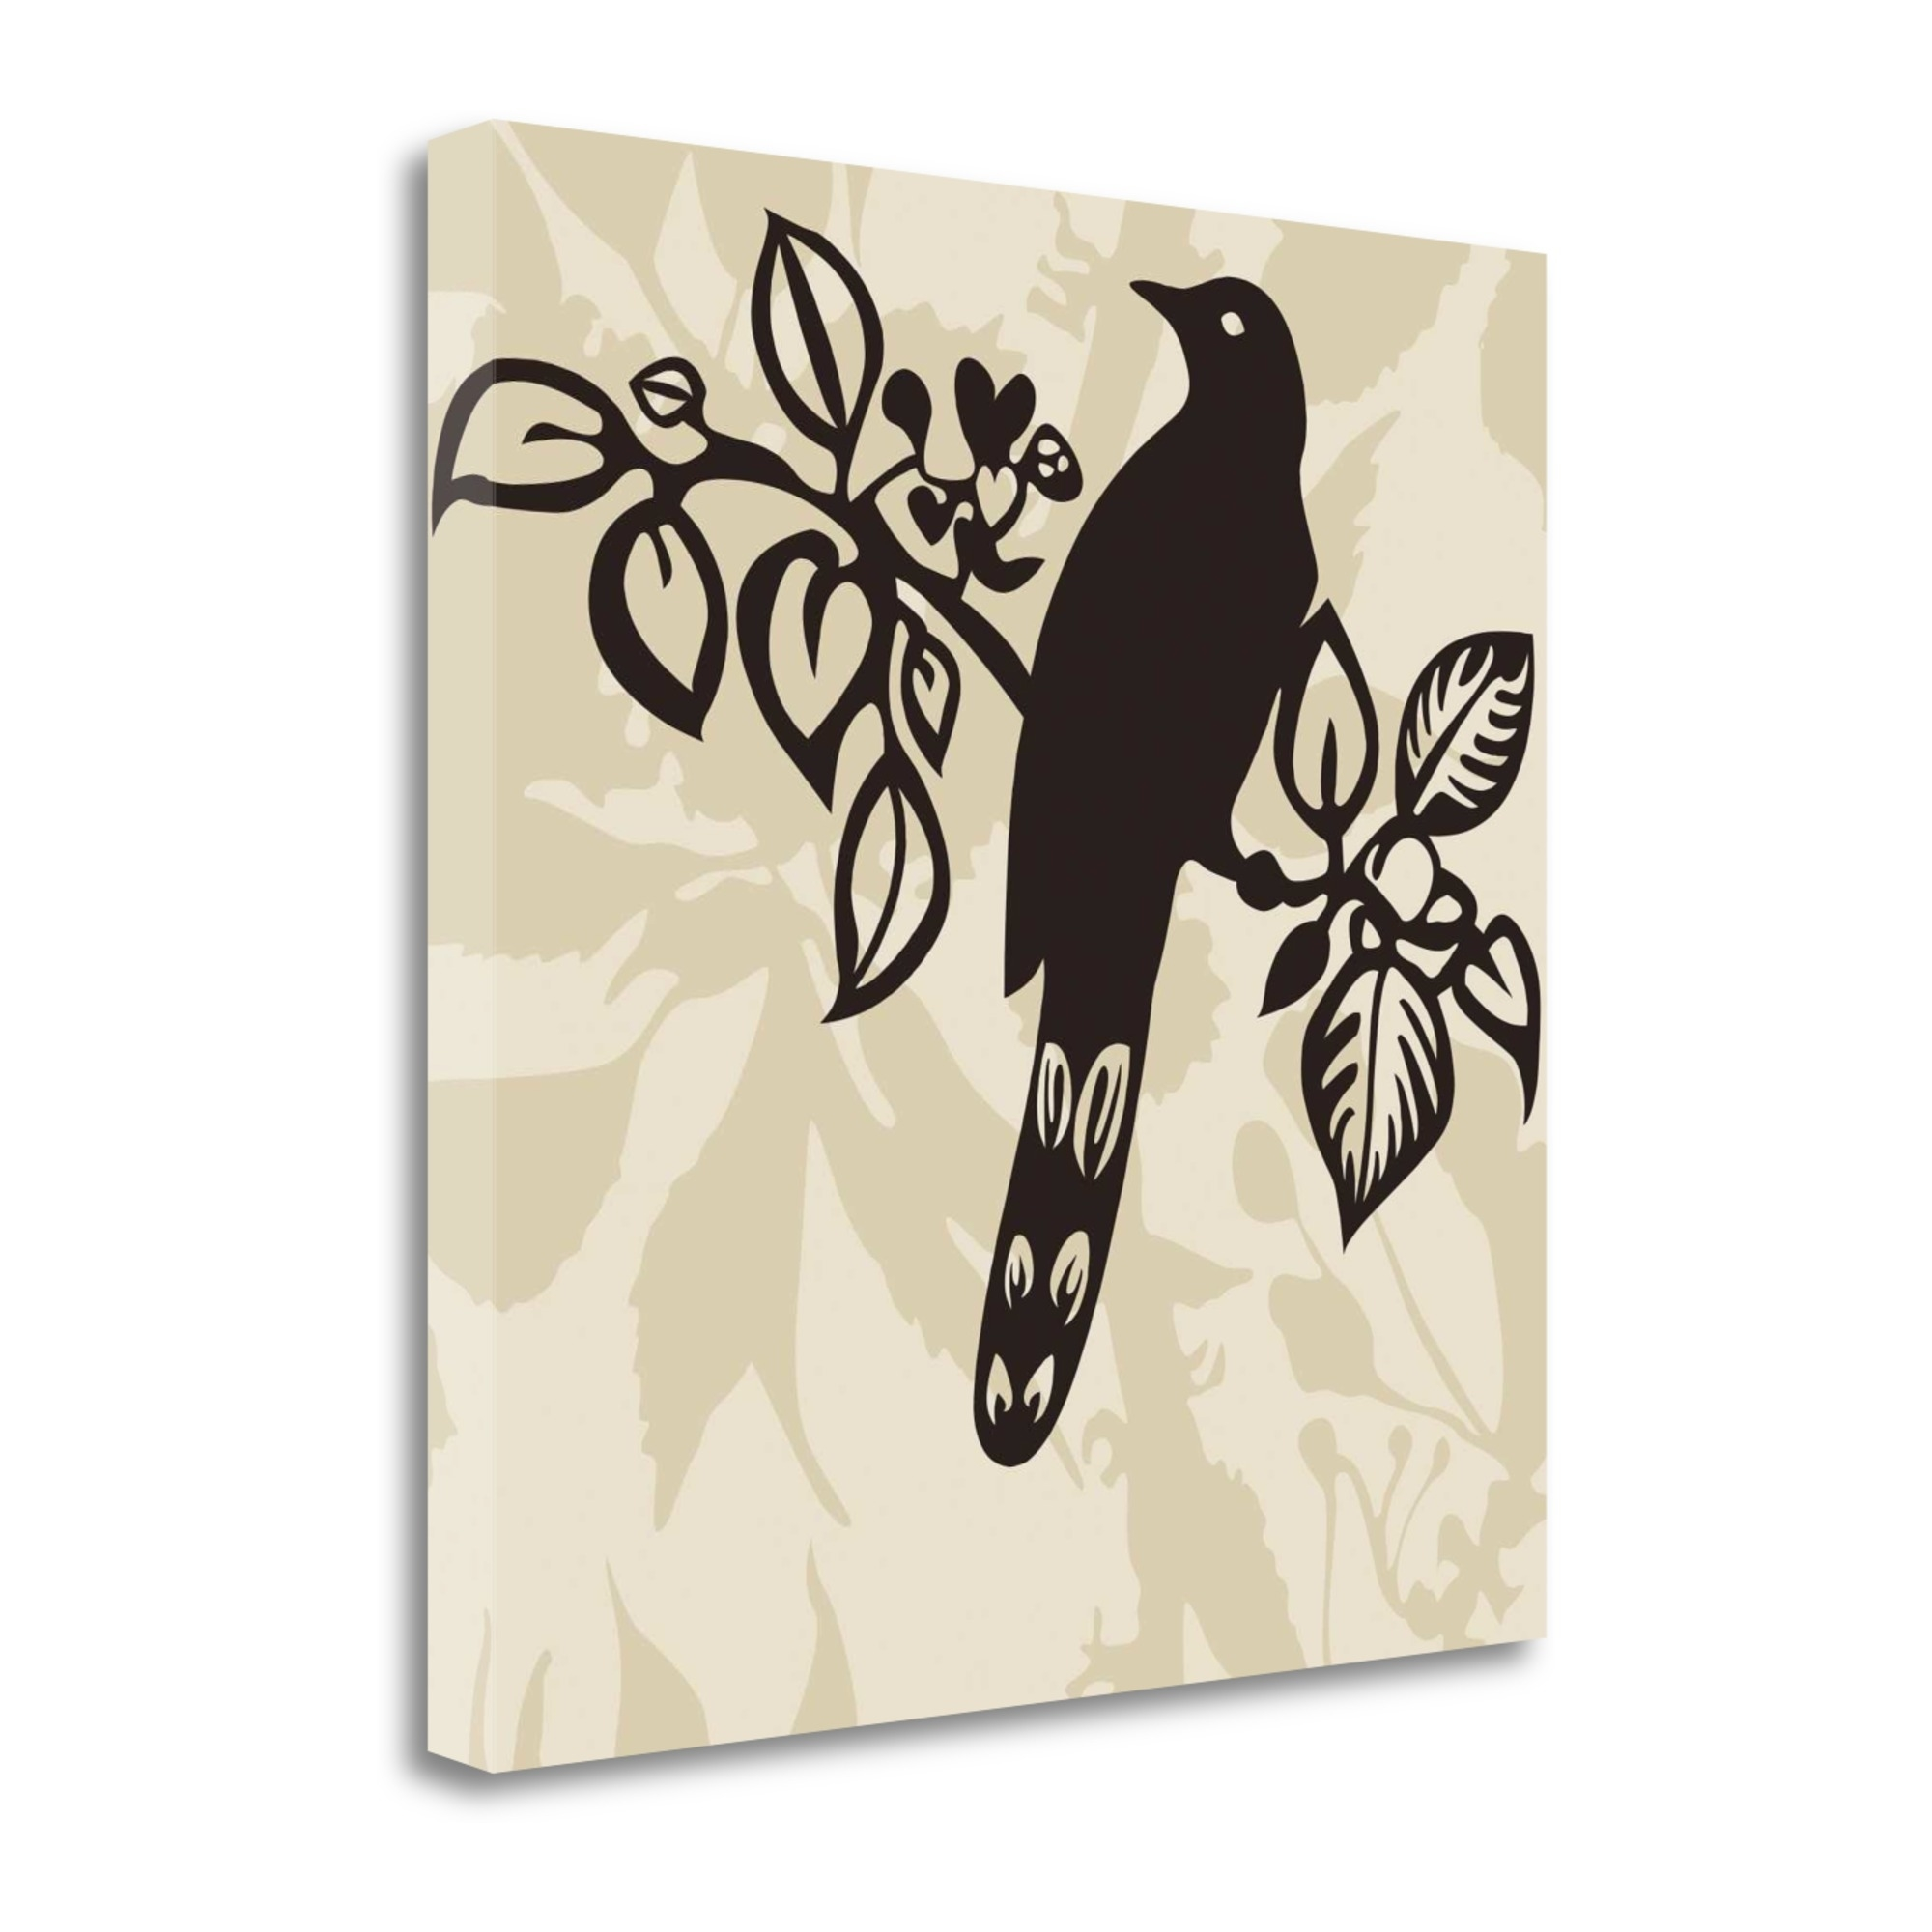 "Song Bird 1 By Jette Svane, 29"" x 29\"" Fine Art Giclee Print on Gallery Wrap Canvas, Ready to Hang"